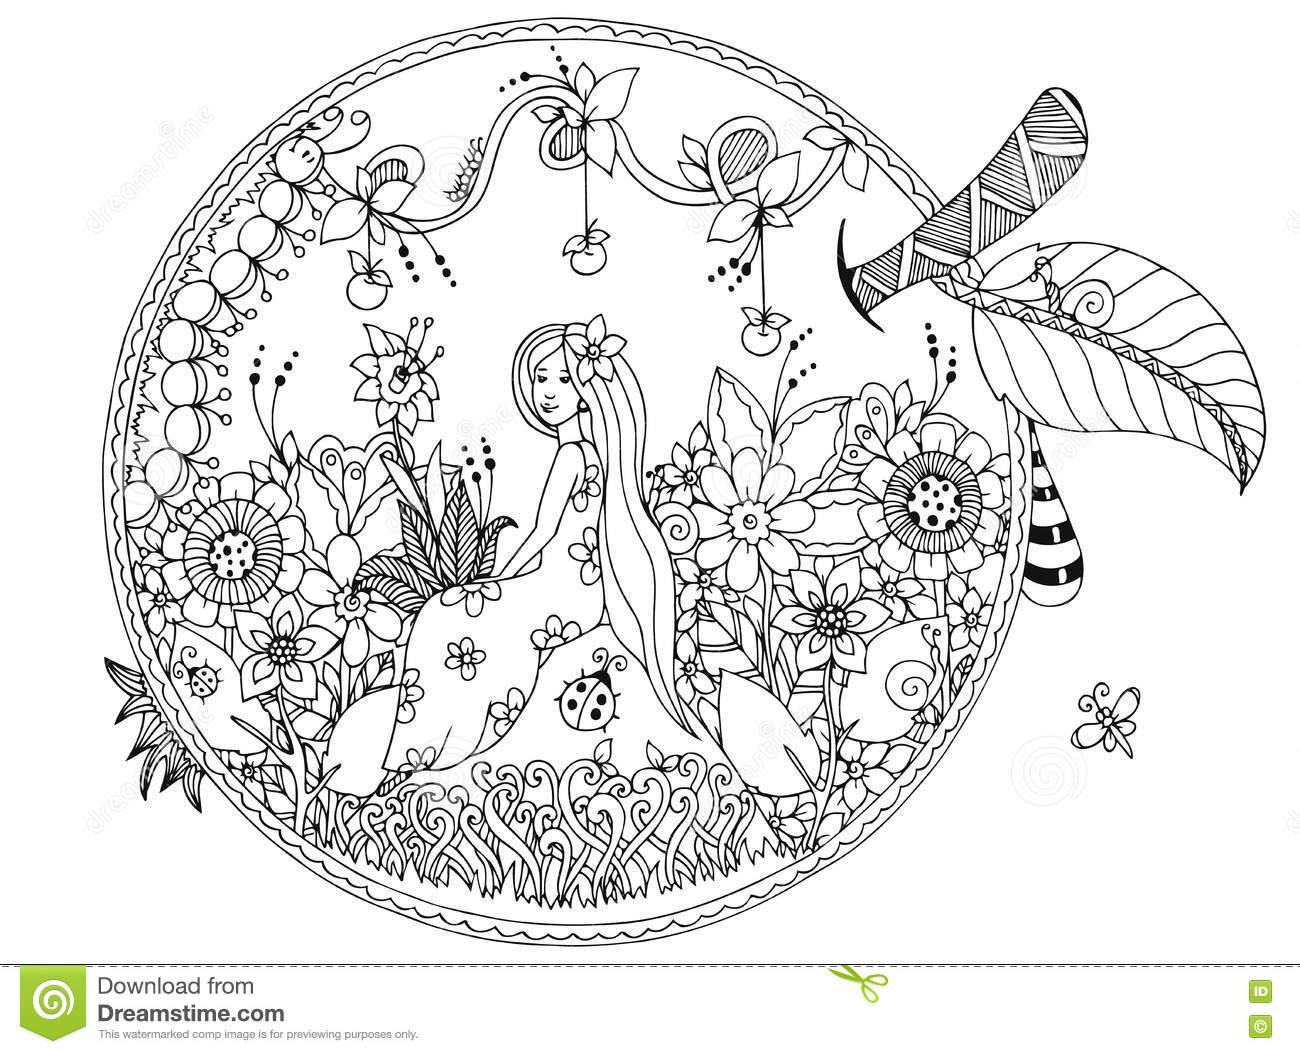 Galerry zen nature coloring book